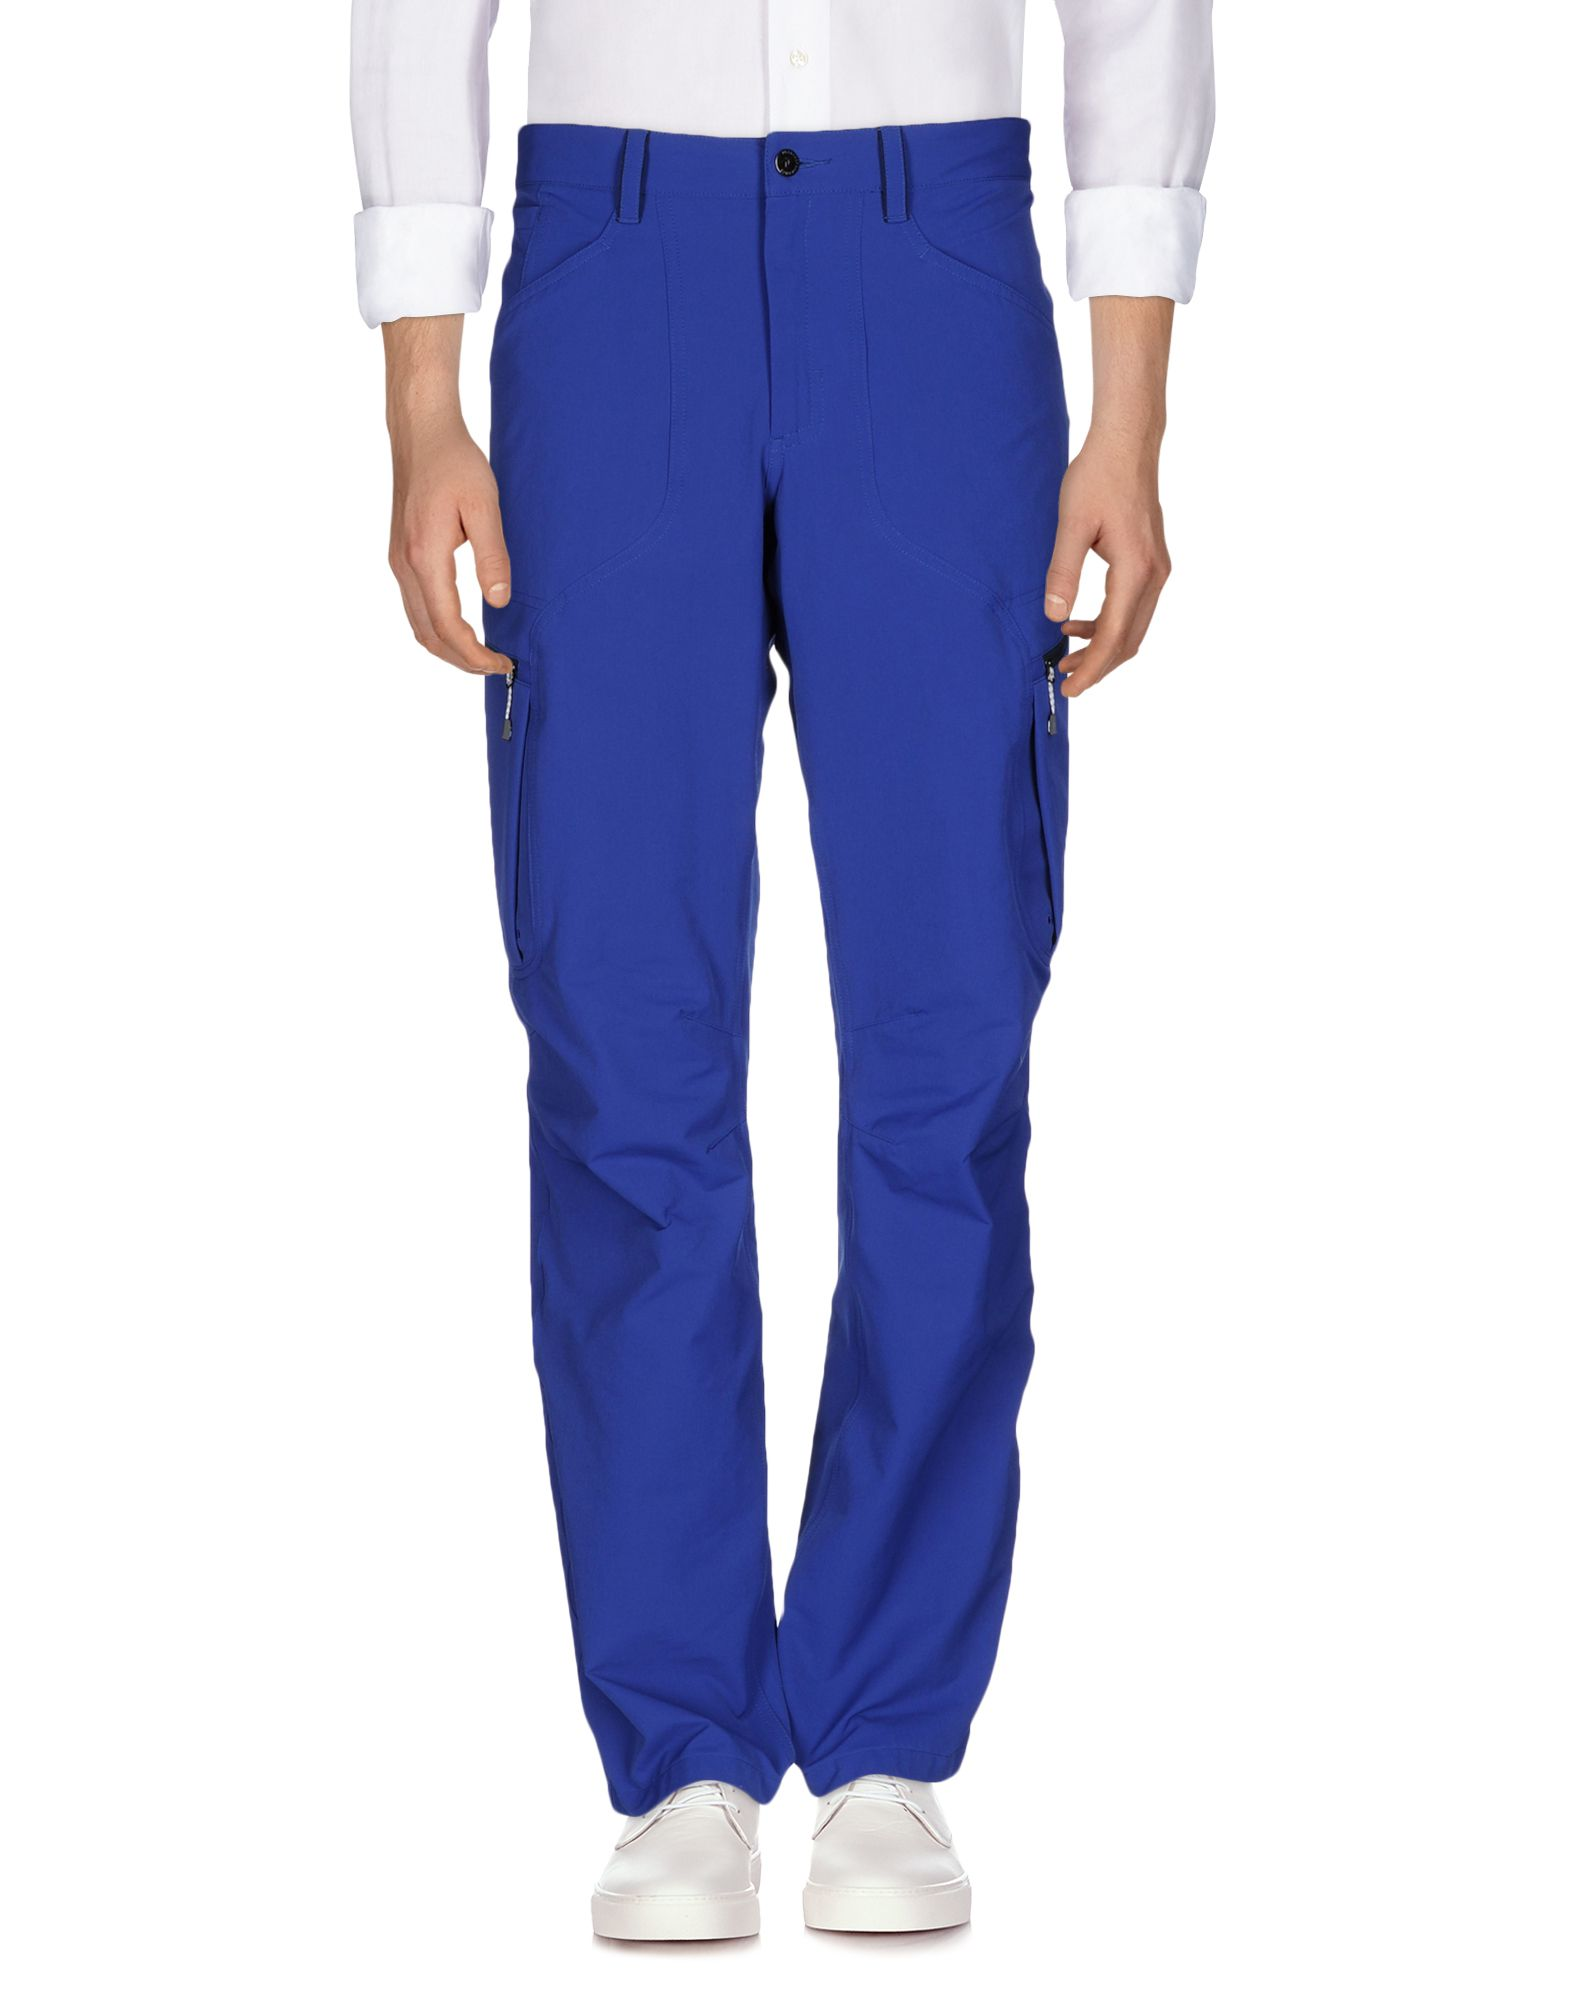 'Peak Performance Casual Pants